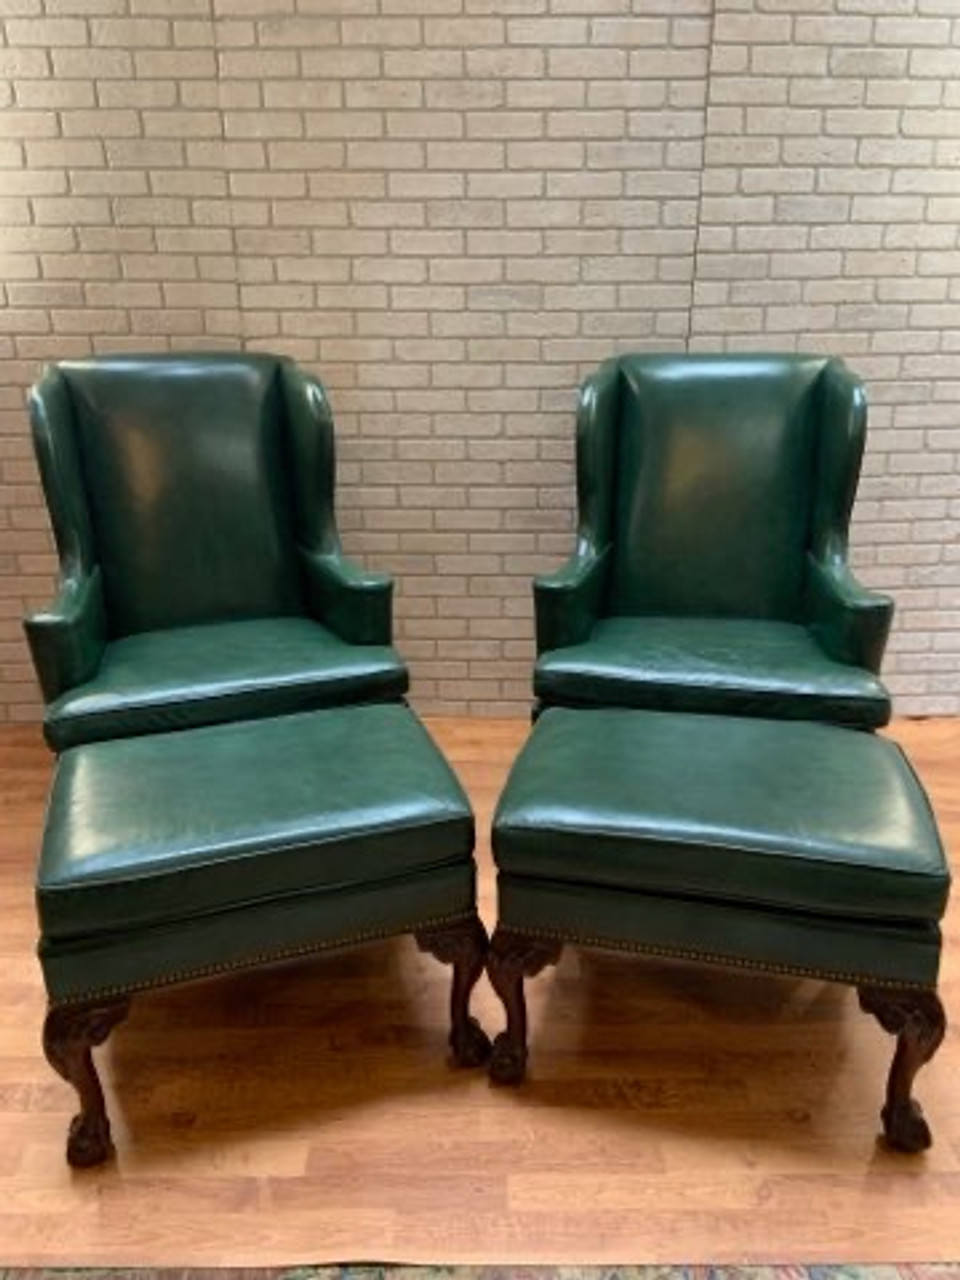 Hancock And Moore Green Leather Wingback Chairs And Ottomans 4 Piece Set Vintage Grind House